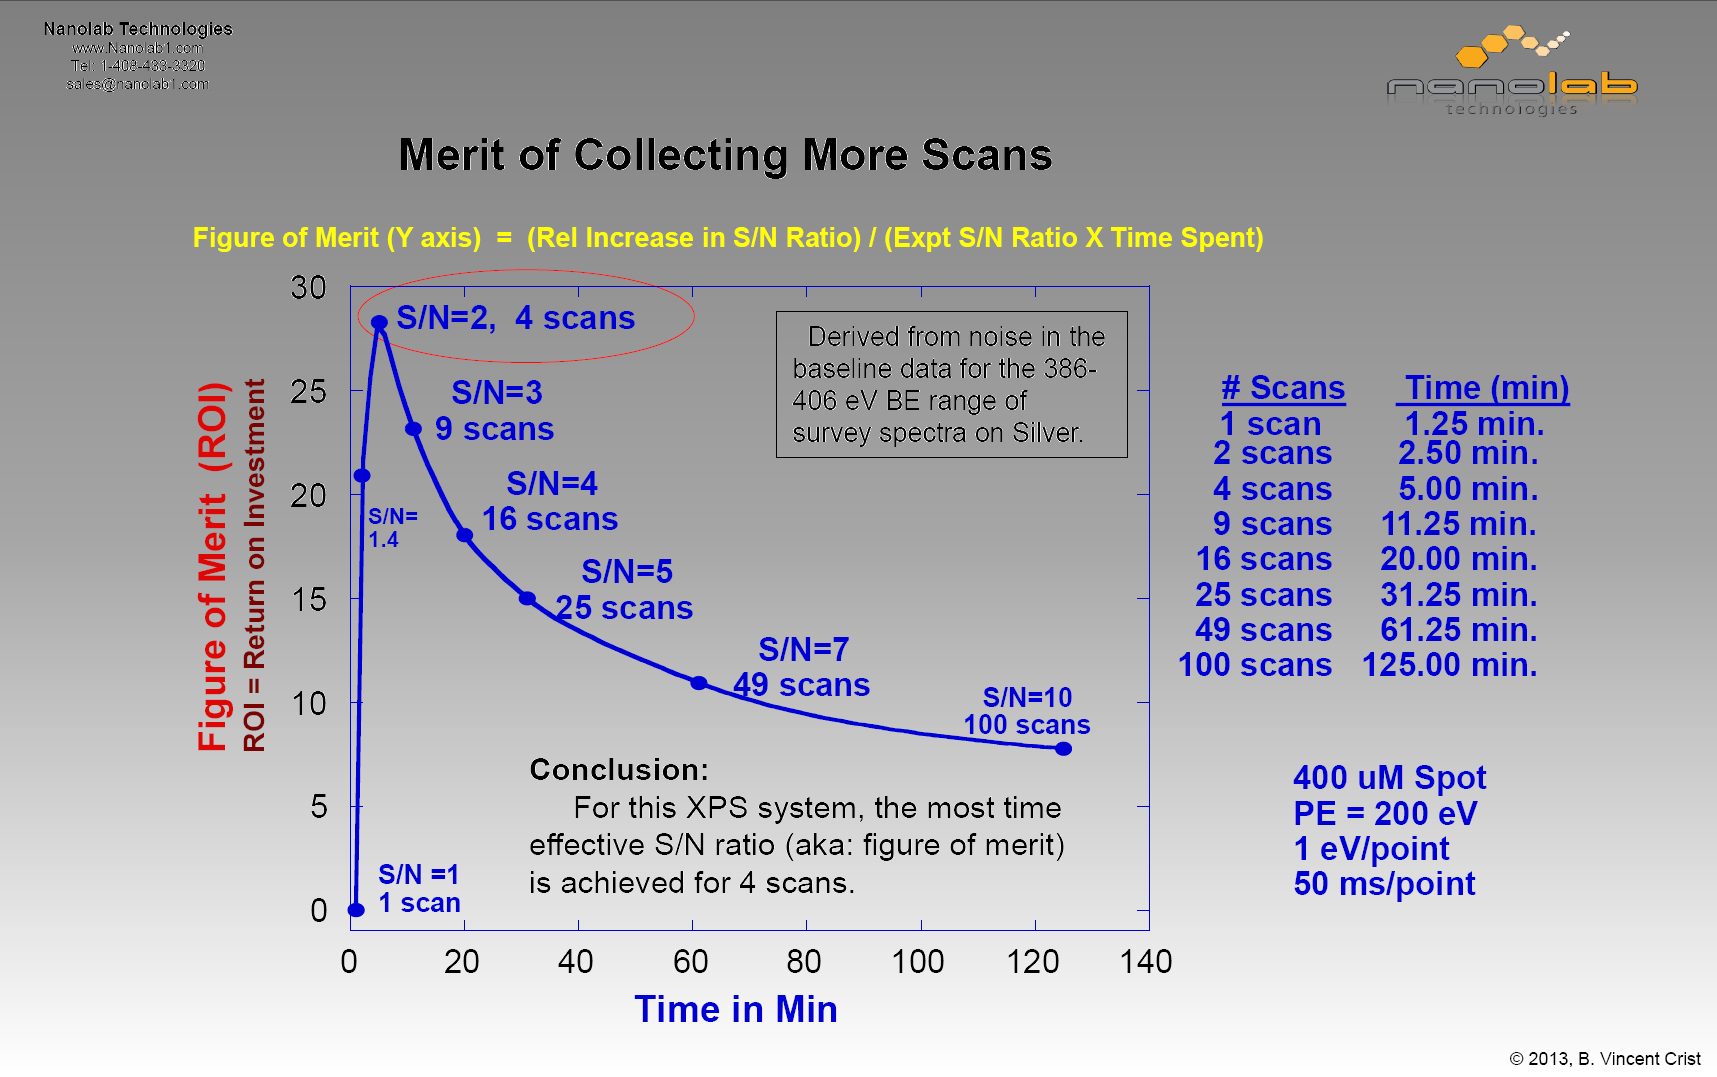 Merits of Collecting More Scans - Nanolab Technologies